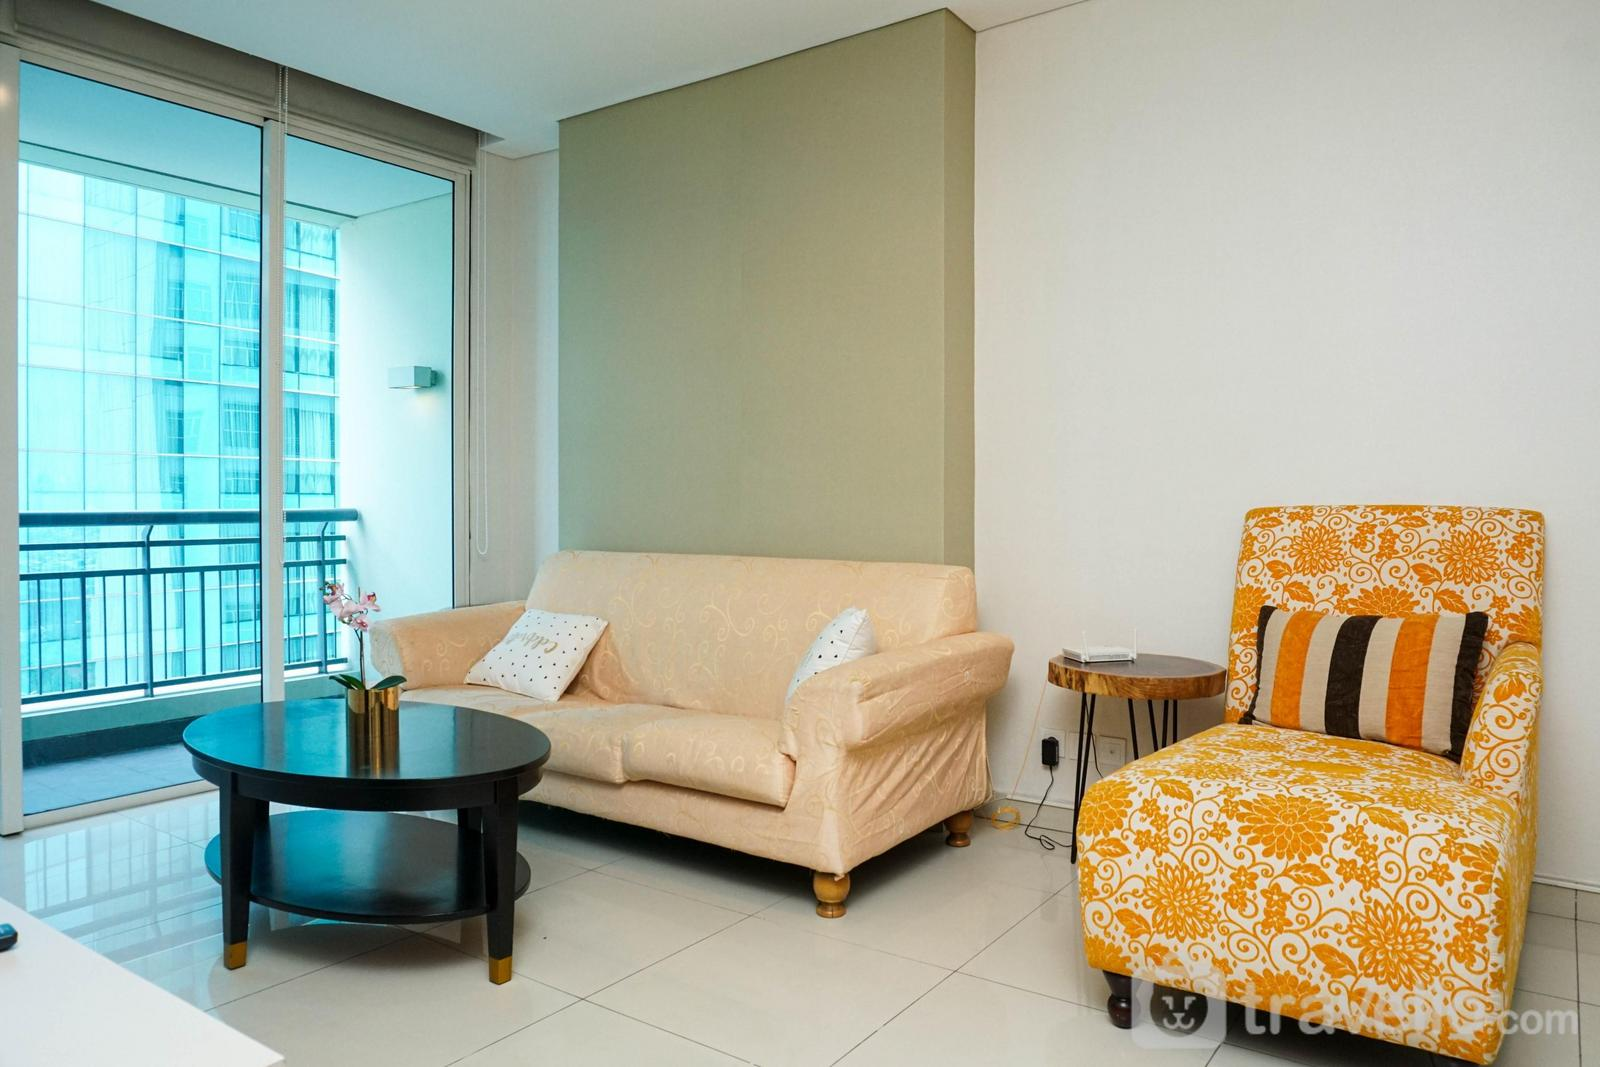 Central Park Residence - 2BR Apartment at Central Park Residence near Mall By Travelio